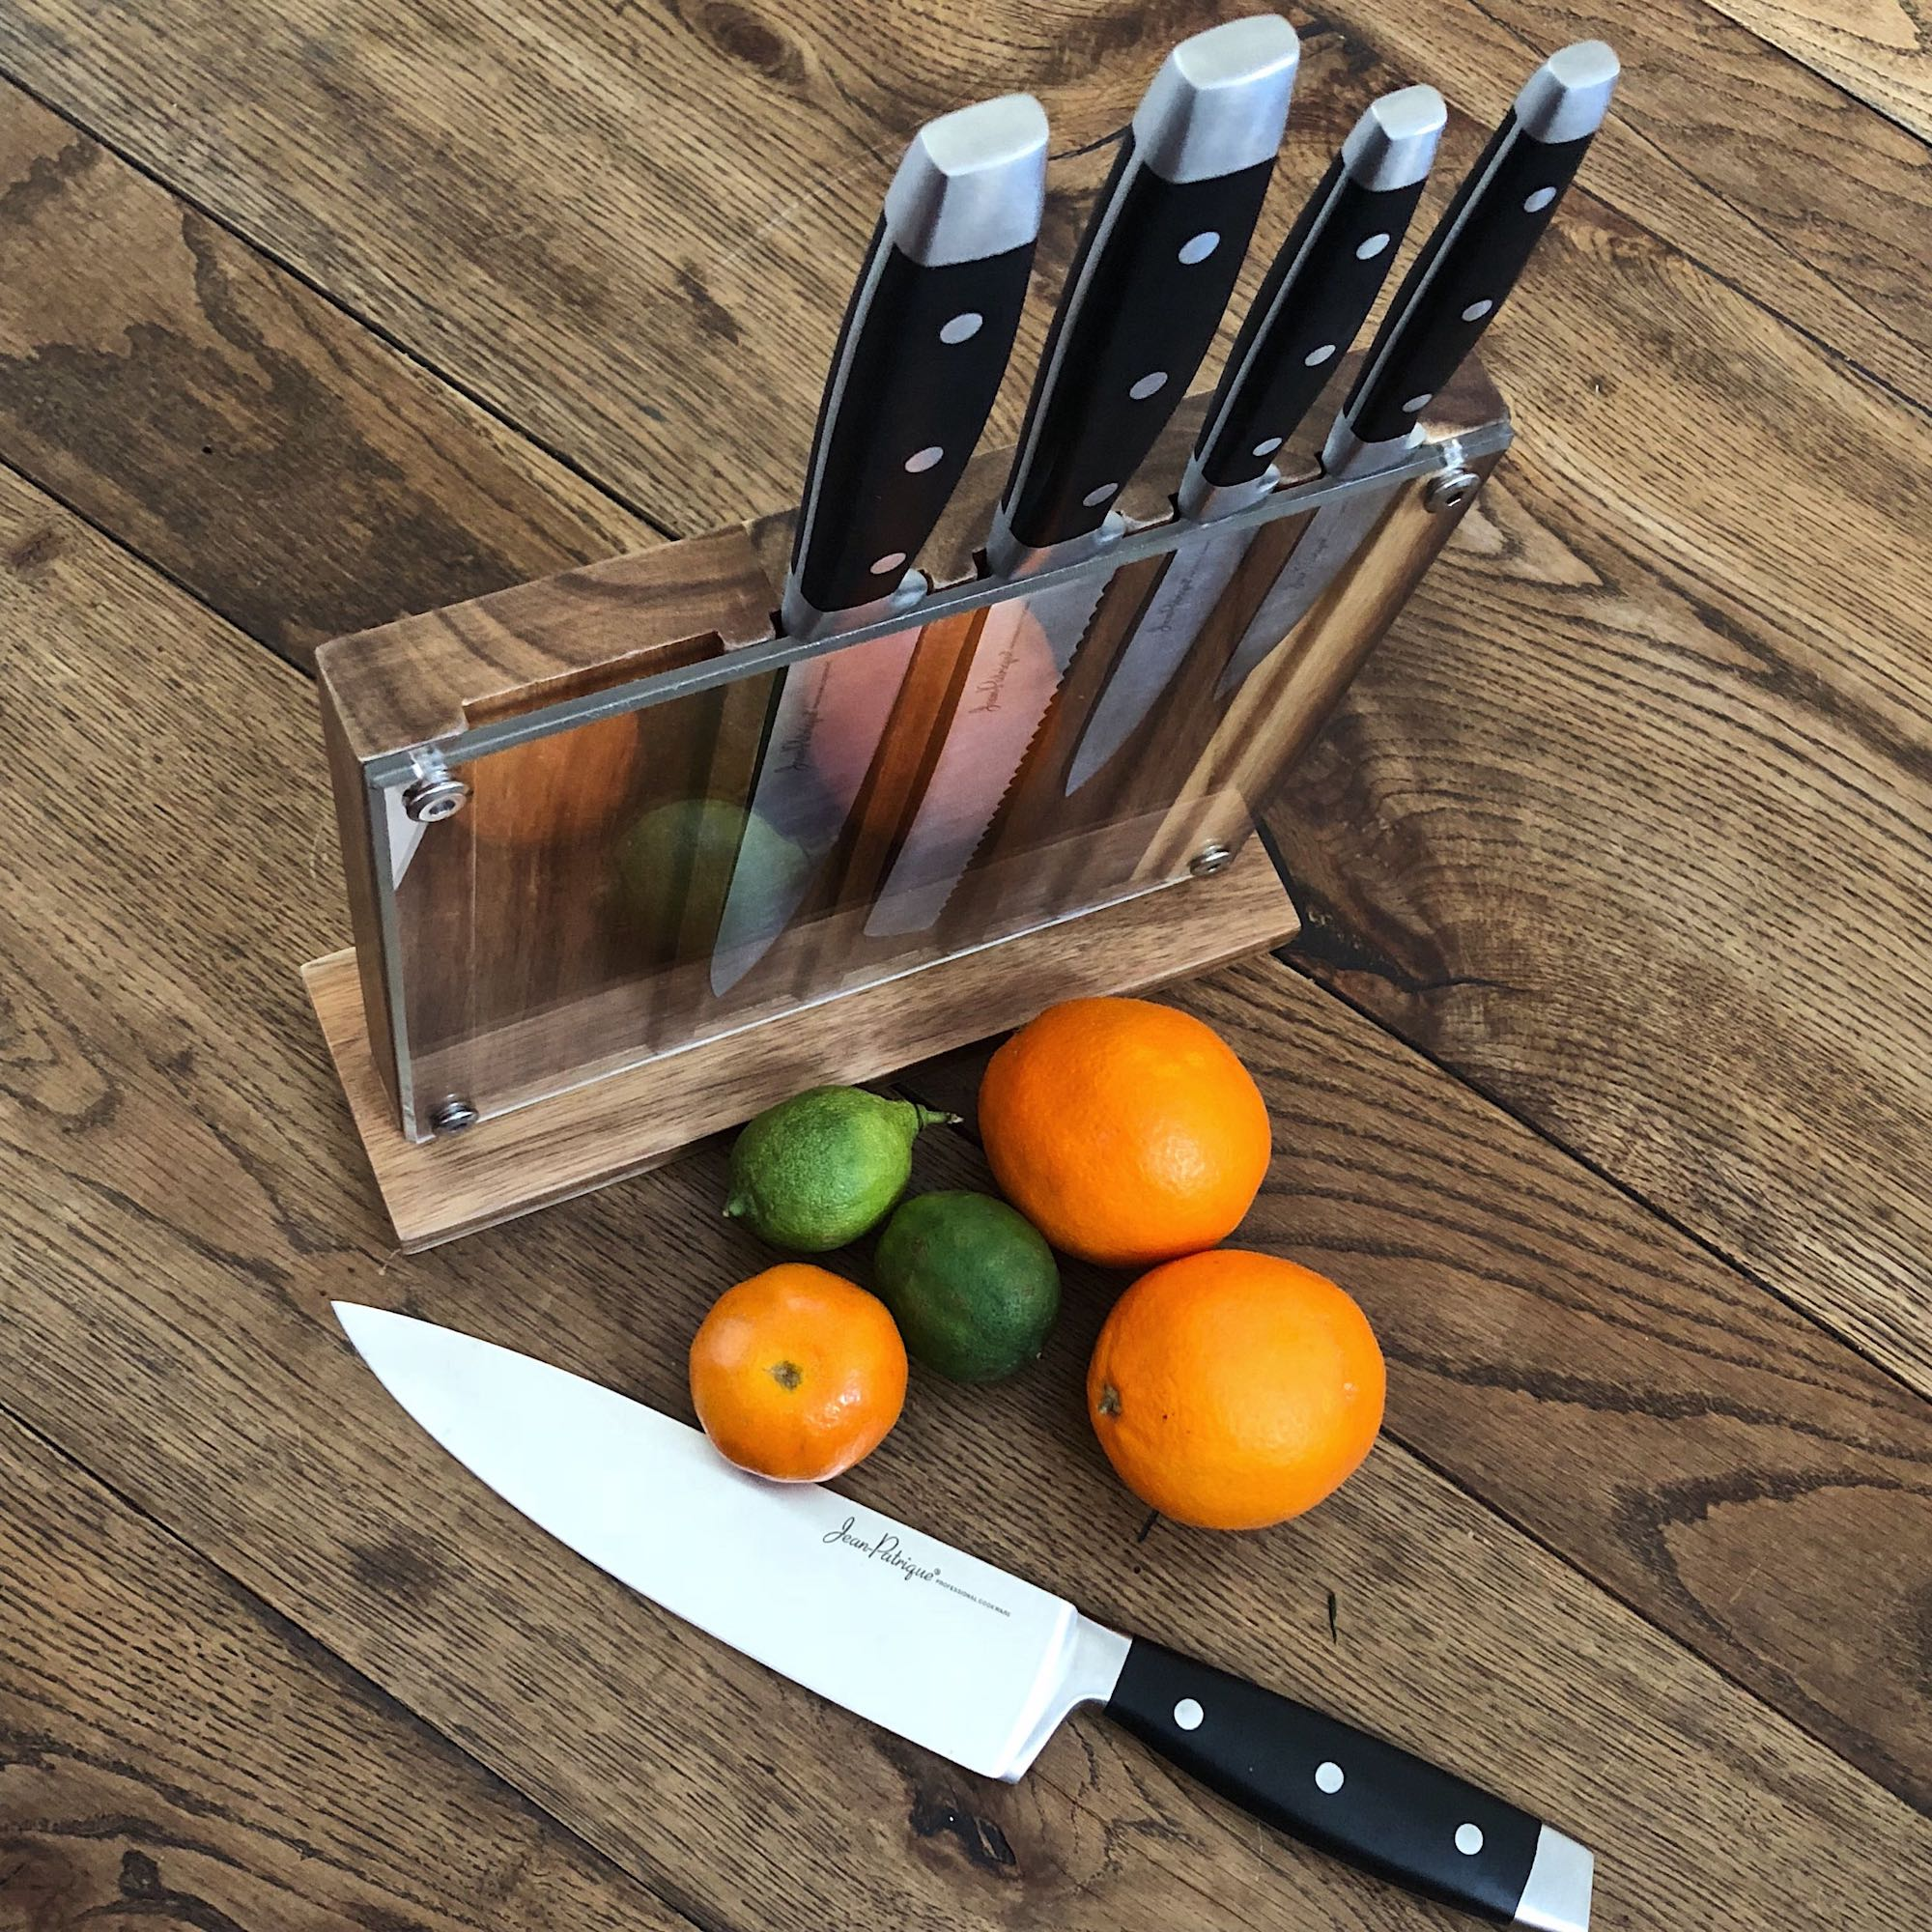 Onyx Collection 5 Kitchen Knife Set with Acrylic Block - Set of 5